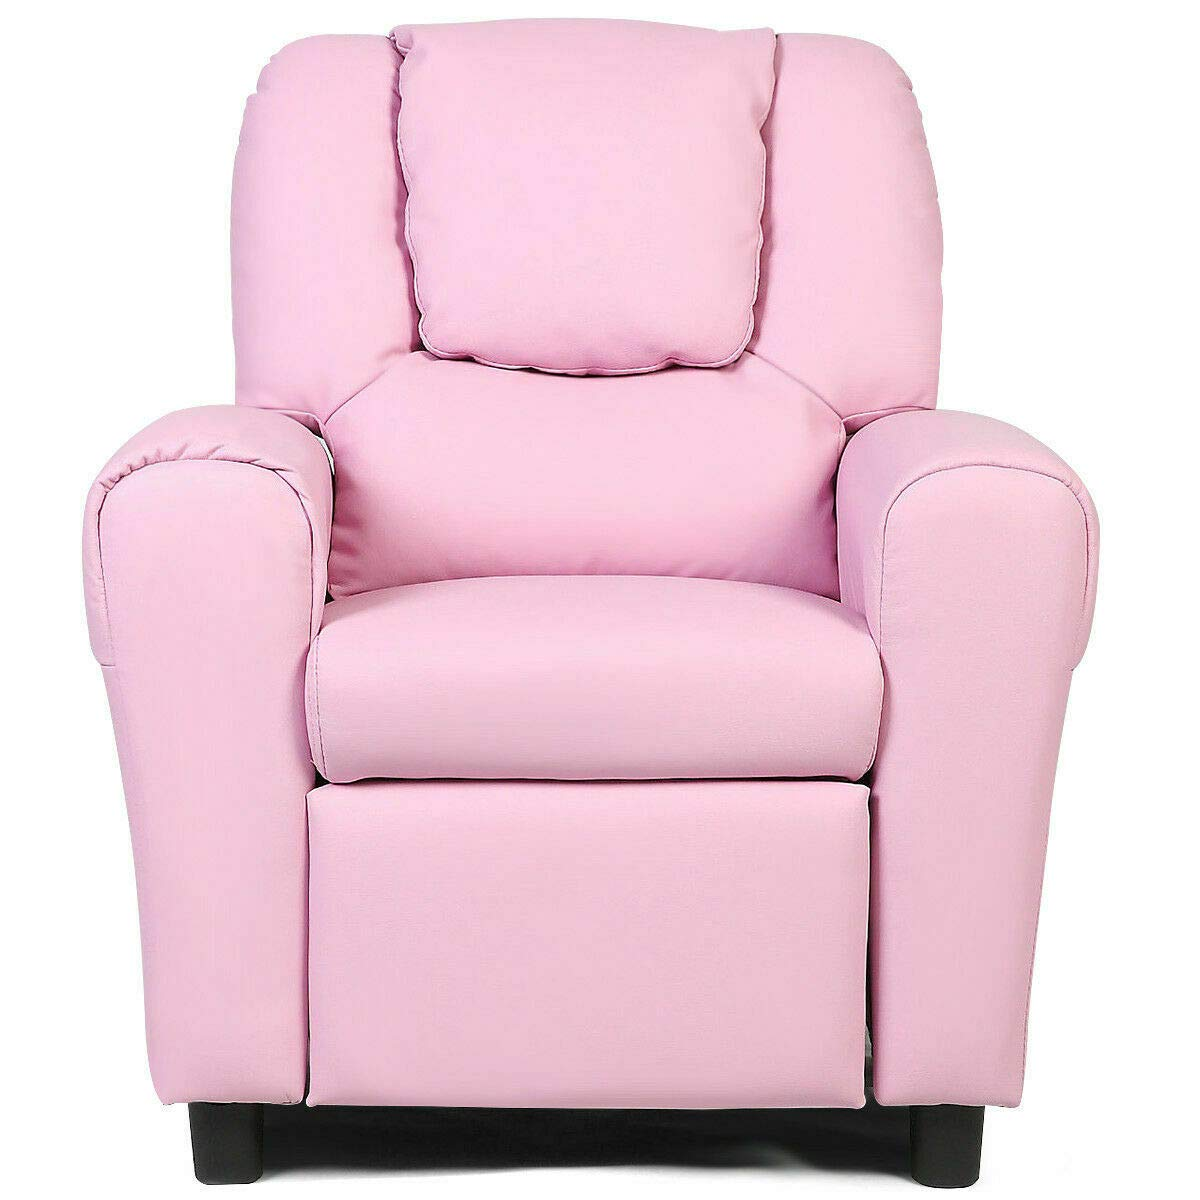 HONEY JOY Kids Recliner Chair, PU Leather Armchair with Holder and Headrest, Lounge Furniture for Boys and Girls, Sturdy Wood Frame, Sofa Chair Suitable for Living Room, Bedroom (Pink) by HONEY JOY